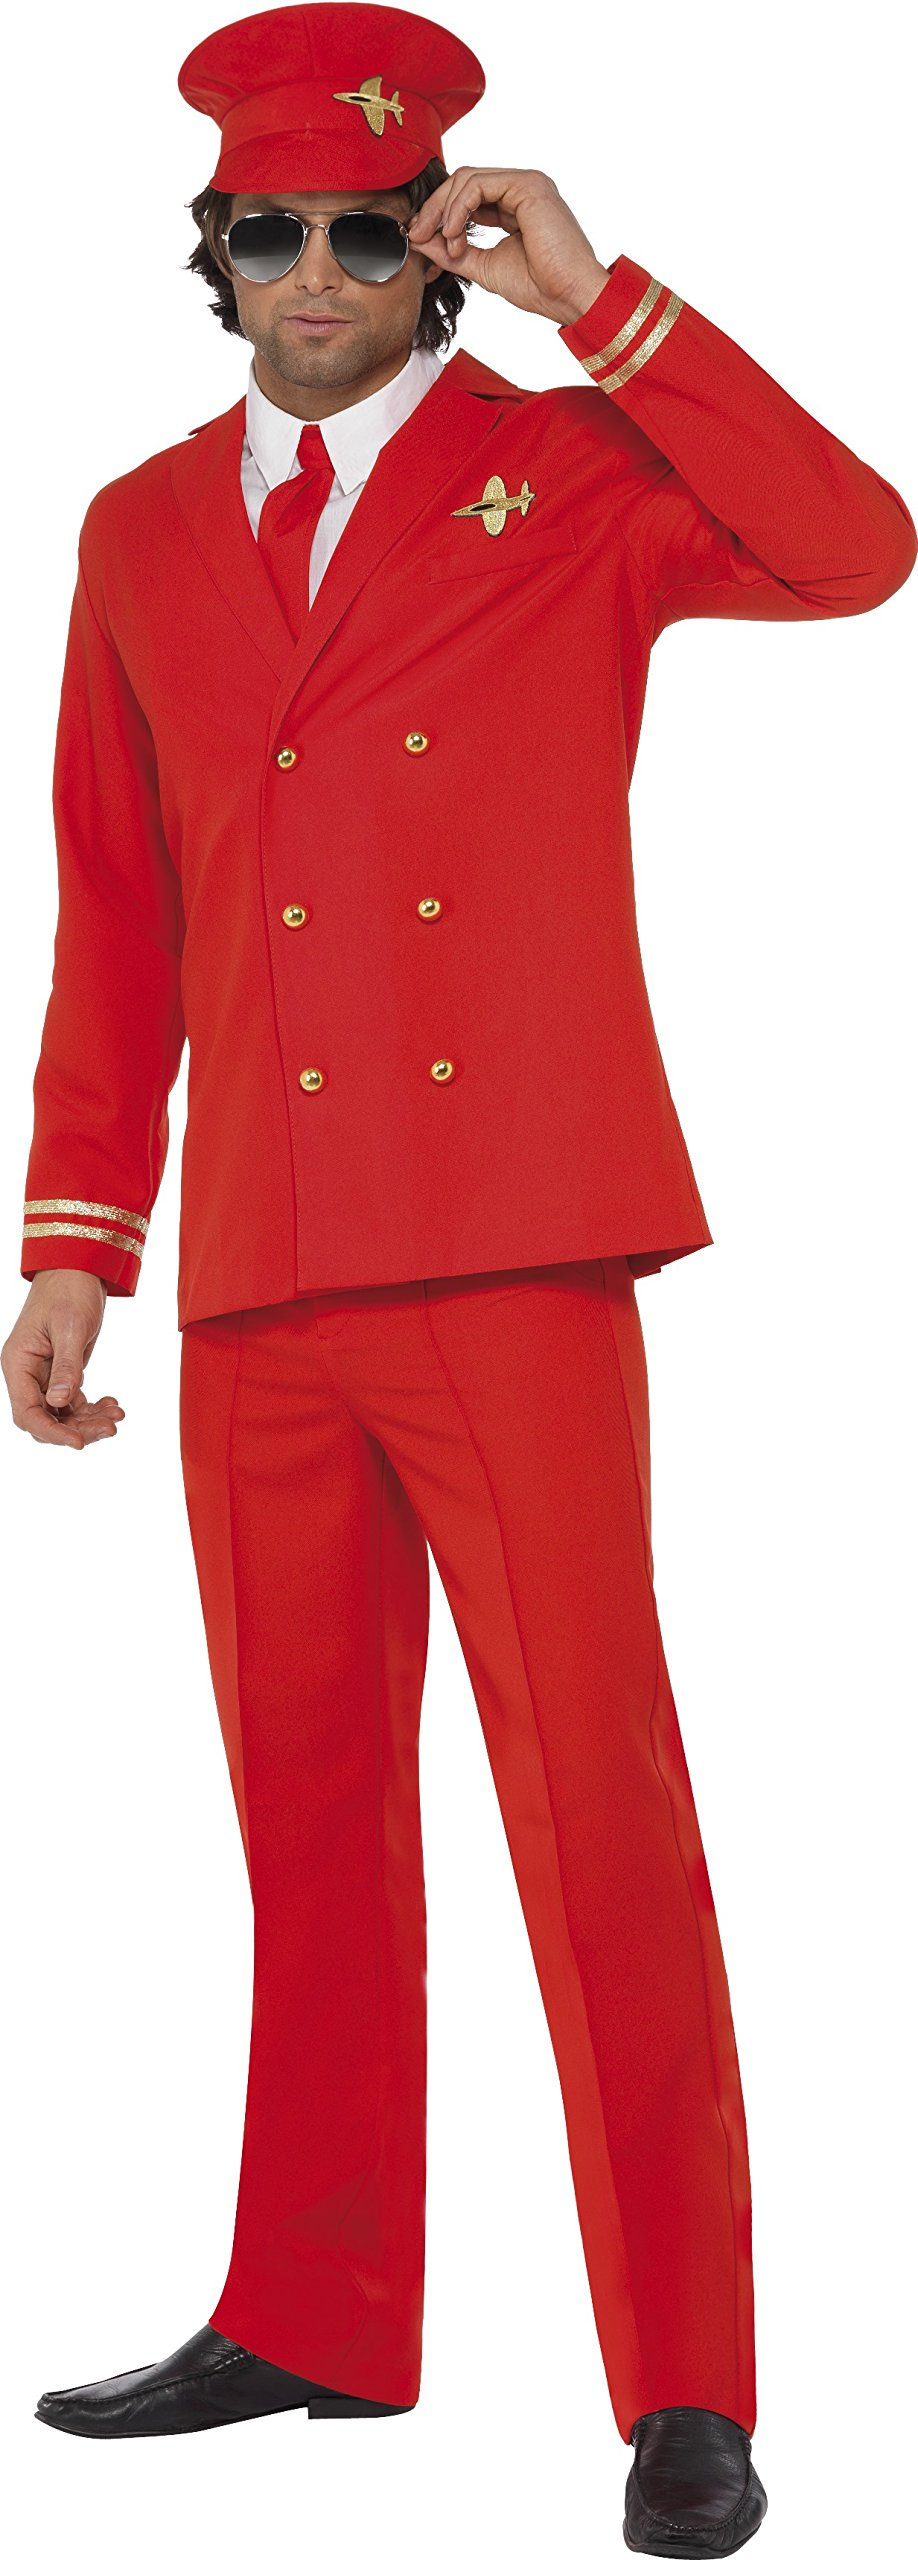 Smiffy's Men's High Flyer Costume with Jacket Trousers Hat and Shirt Front, Red, Medium